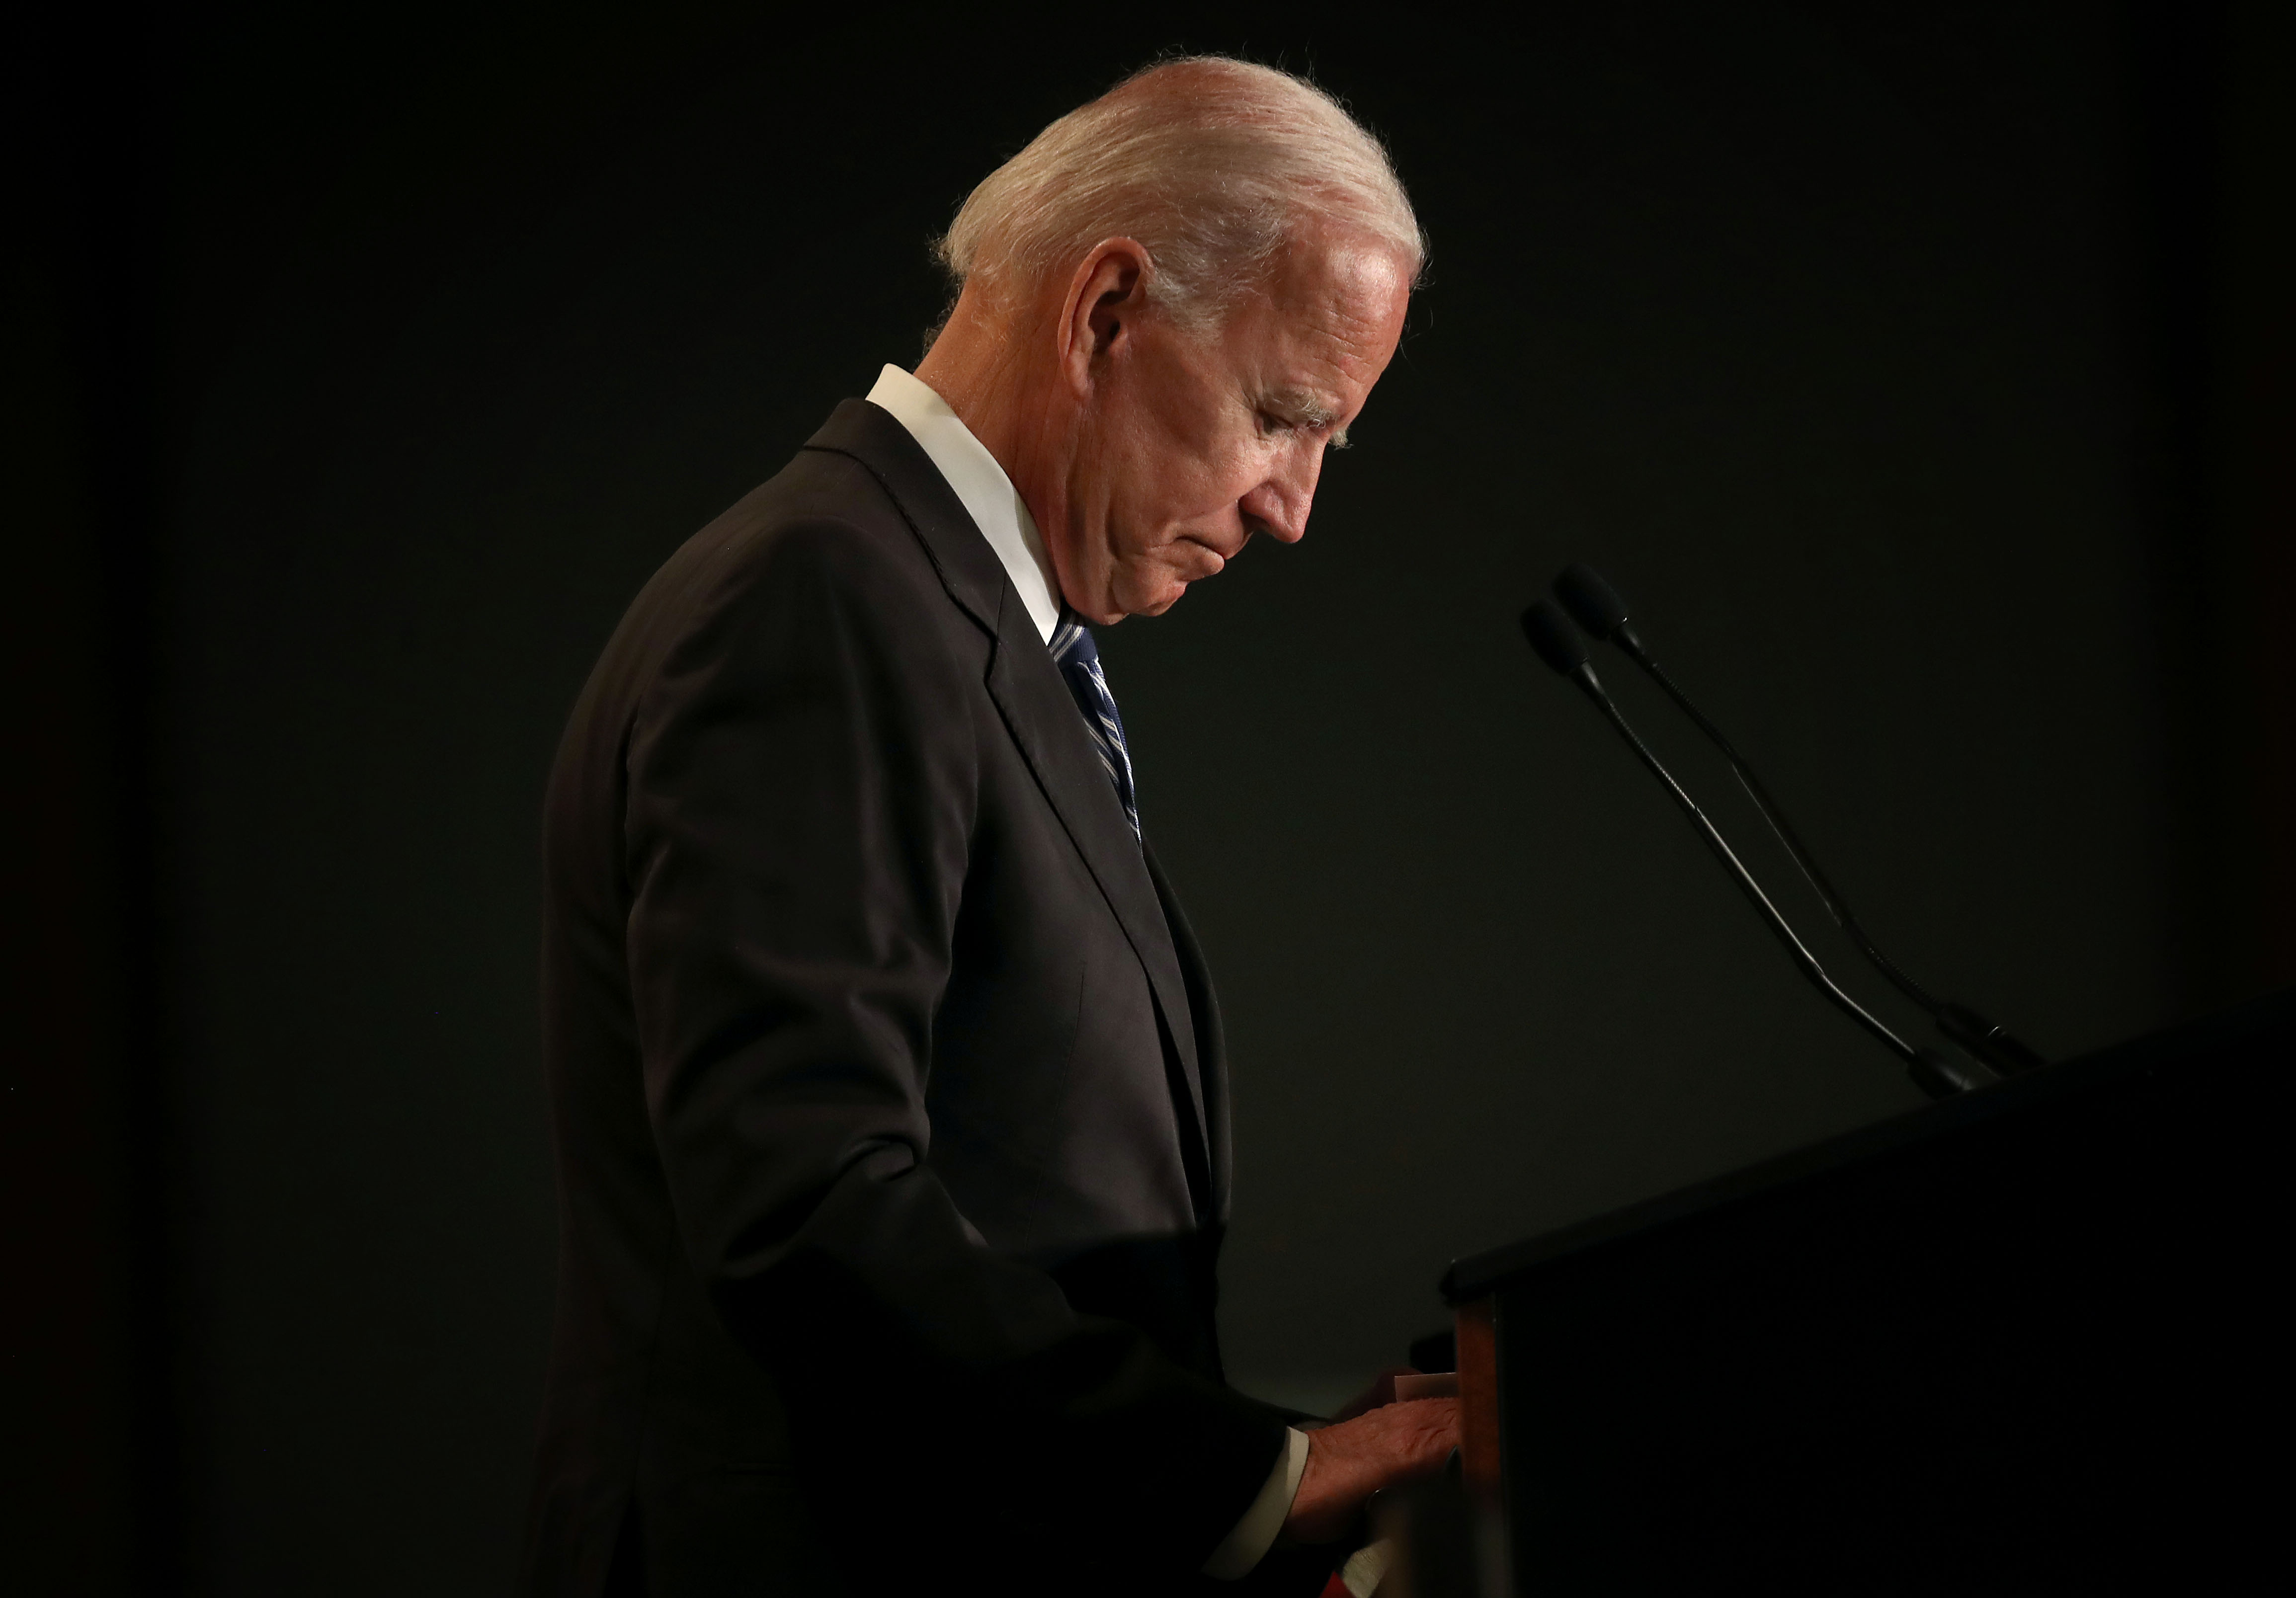 Joe Biden's long record supporting the war on drugs and mass incarceration, explained